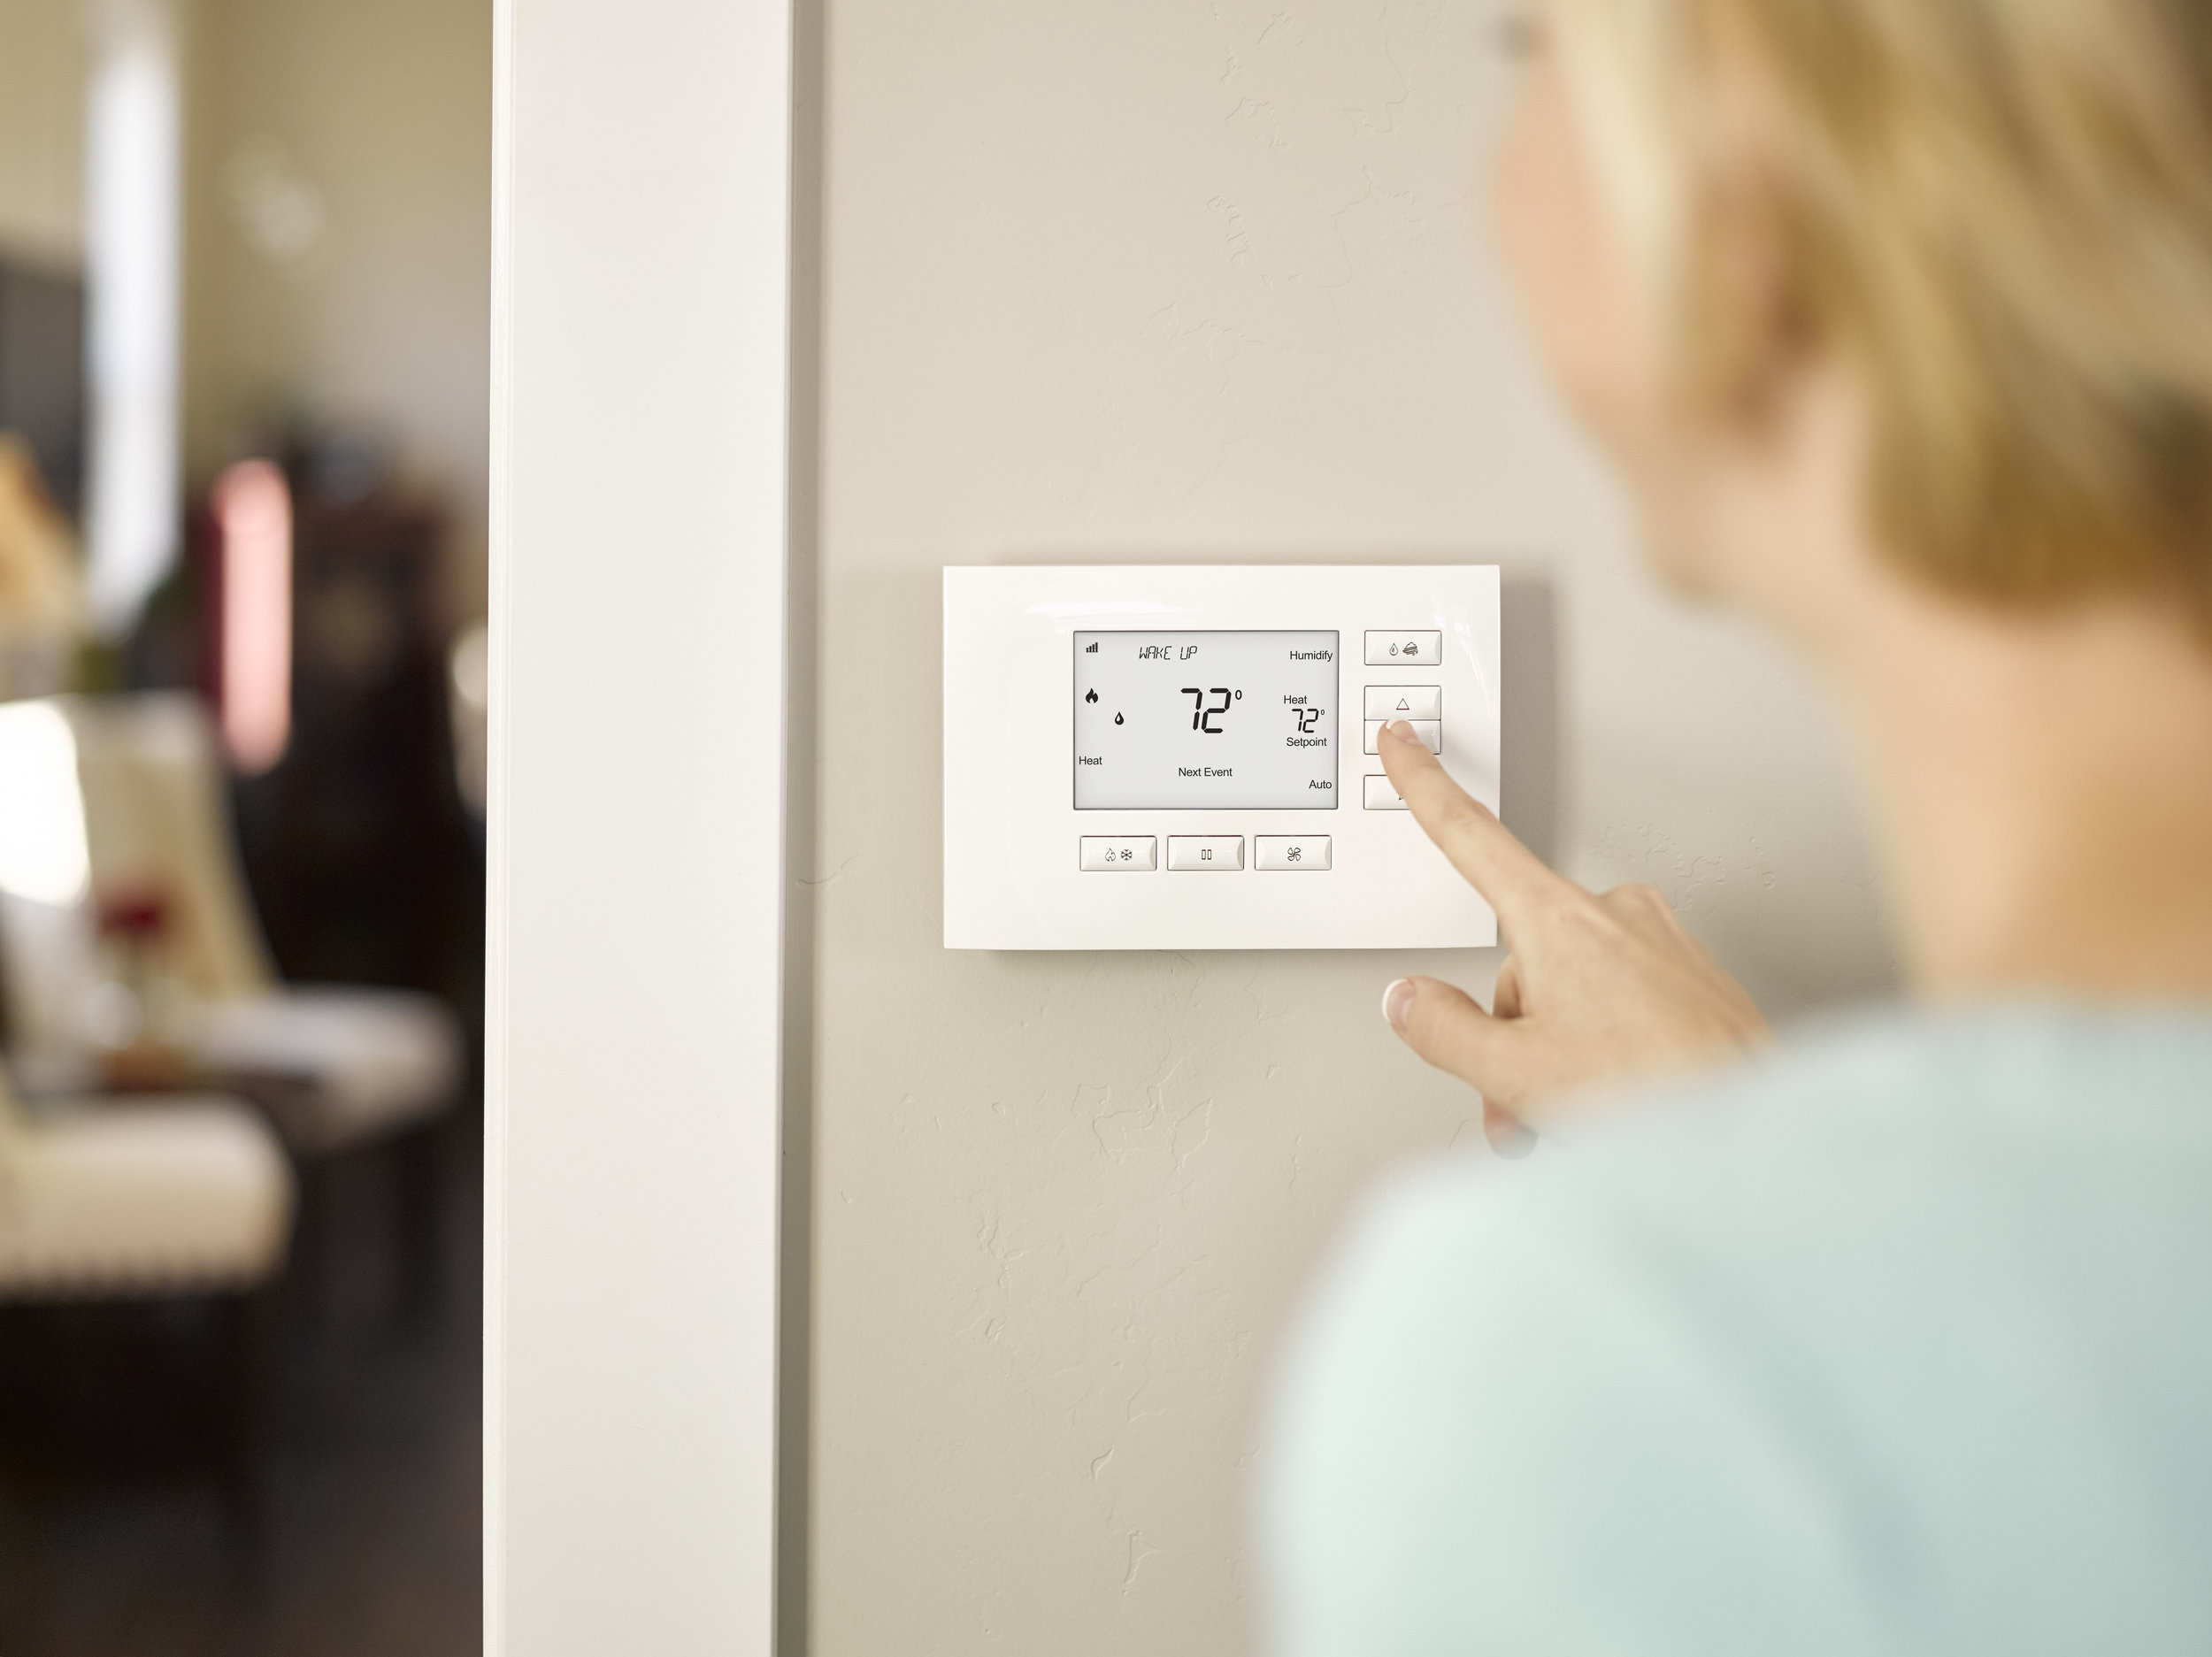 Control4 Thermostat - The Contrl4 thermostat is built by HVAC industry leader Aprilairre. The thermostat can handle simple to complex HVAC systems and can even run on battery power for older two wire systems.